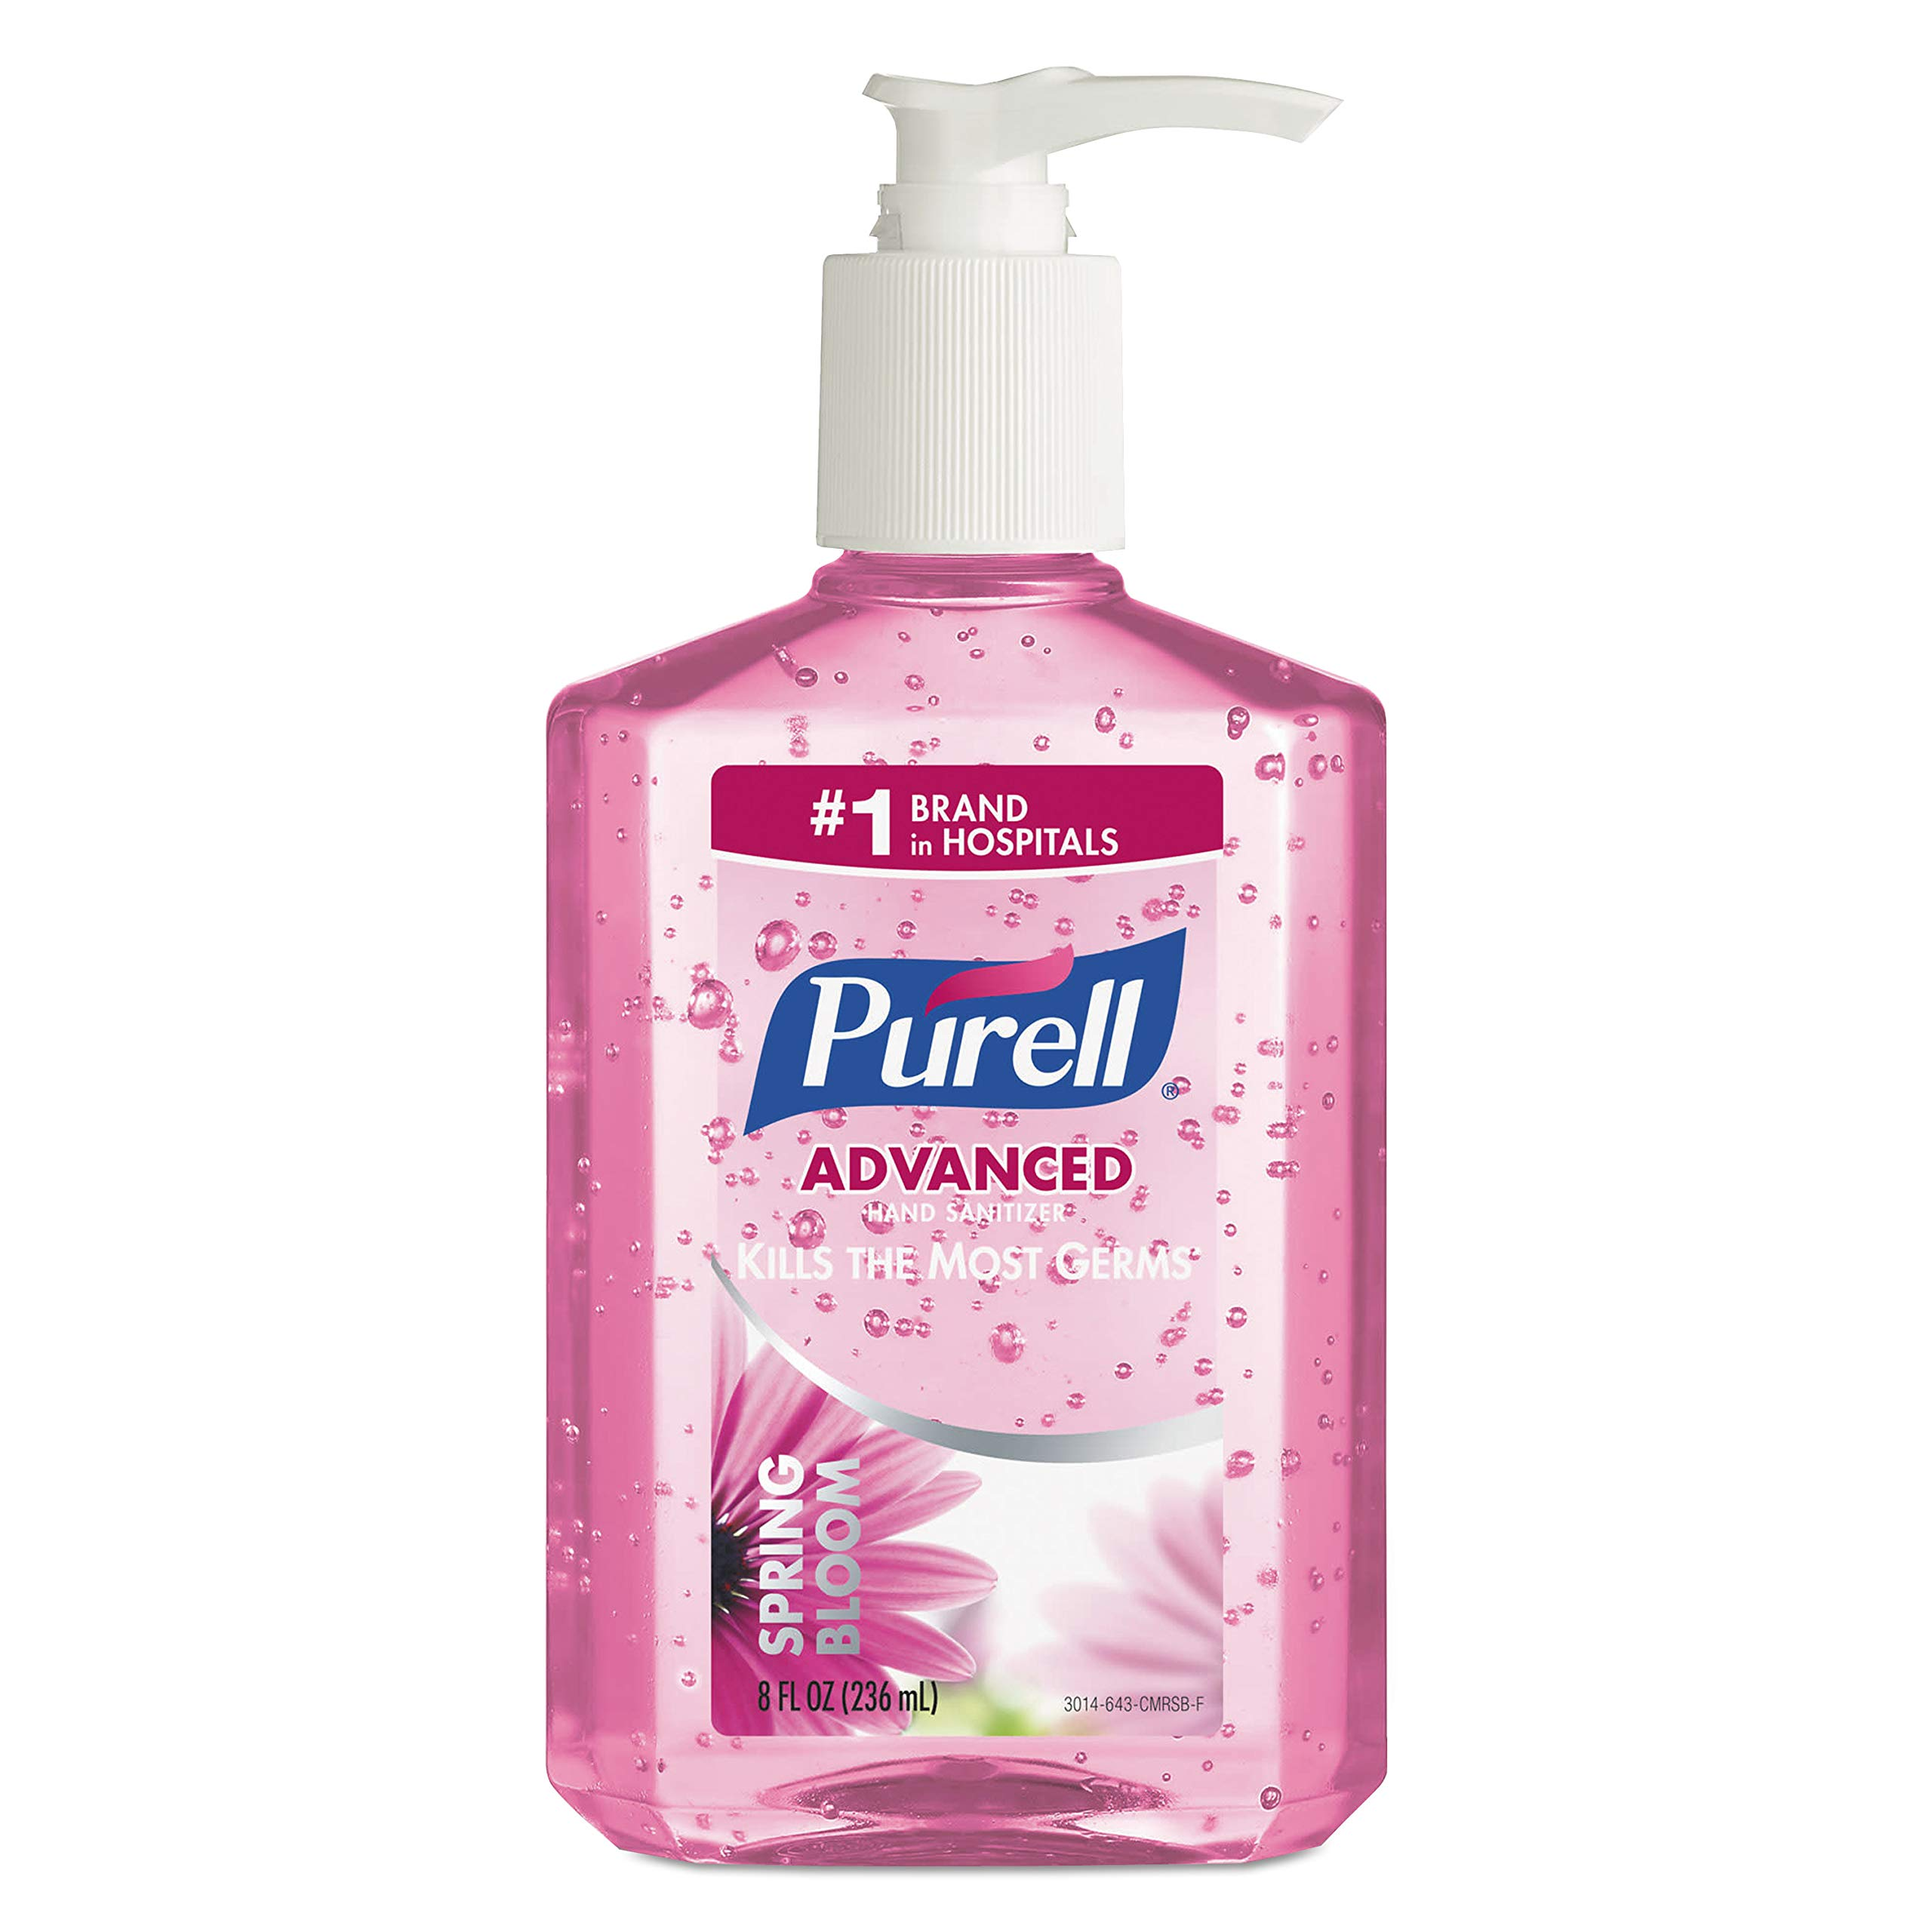 PURELL Advanced Hand Sanitizer Gel, Spring Bloom Fragrance, 8 fl oz Pump Bottle (Pack of 12) - 3014-12 by Purell